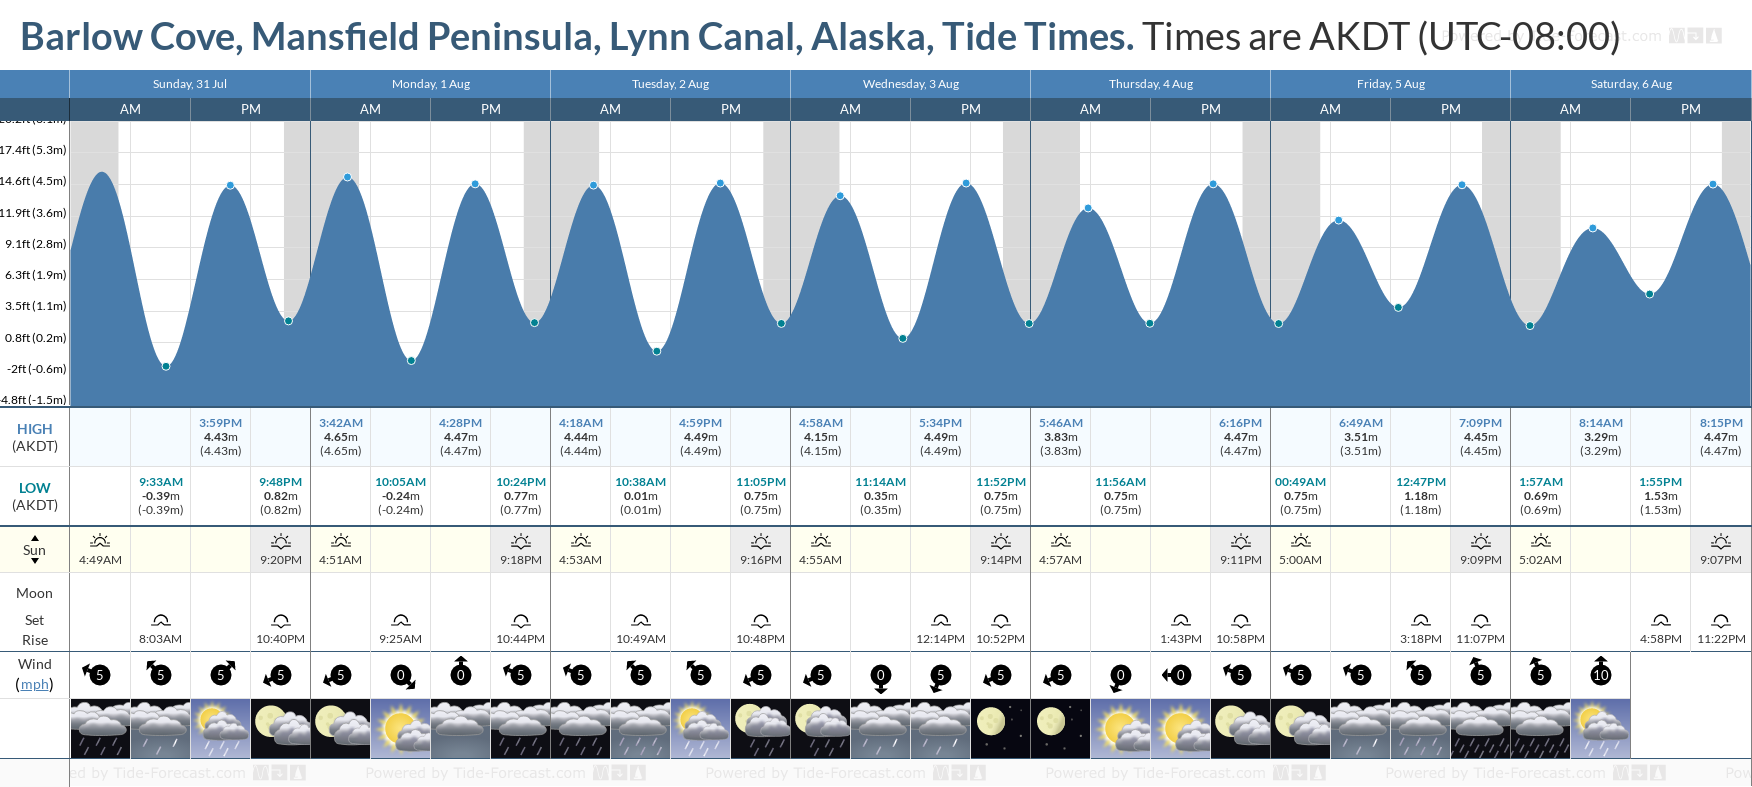 Barlow Cove, Mansfield Peninsula, Lynn Canal, Alaska Tide Chart including high and low tide tide times for the next 7 days